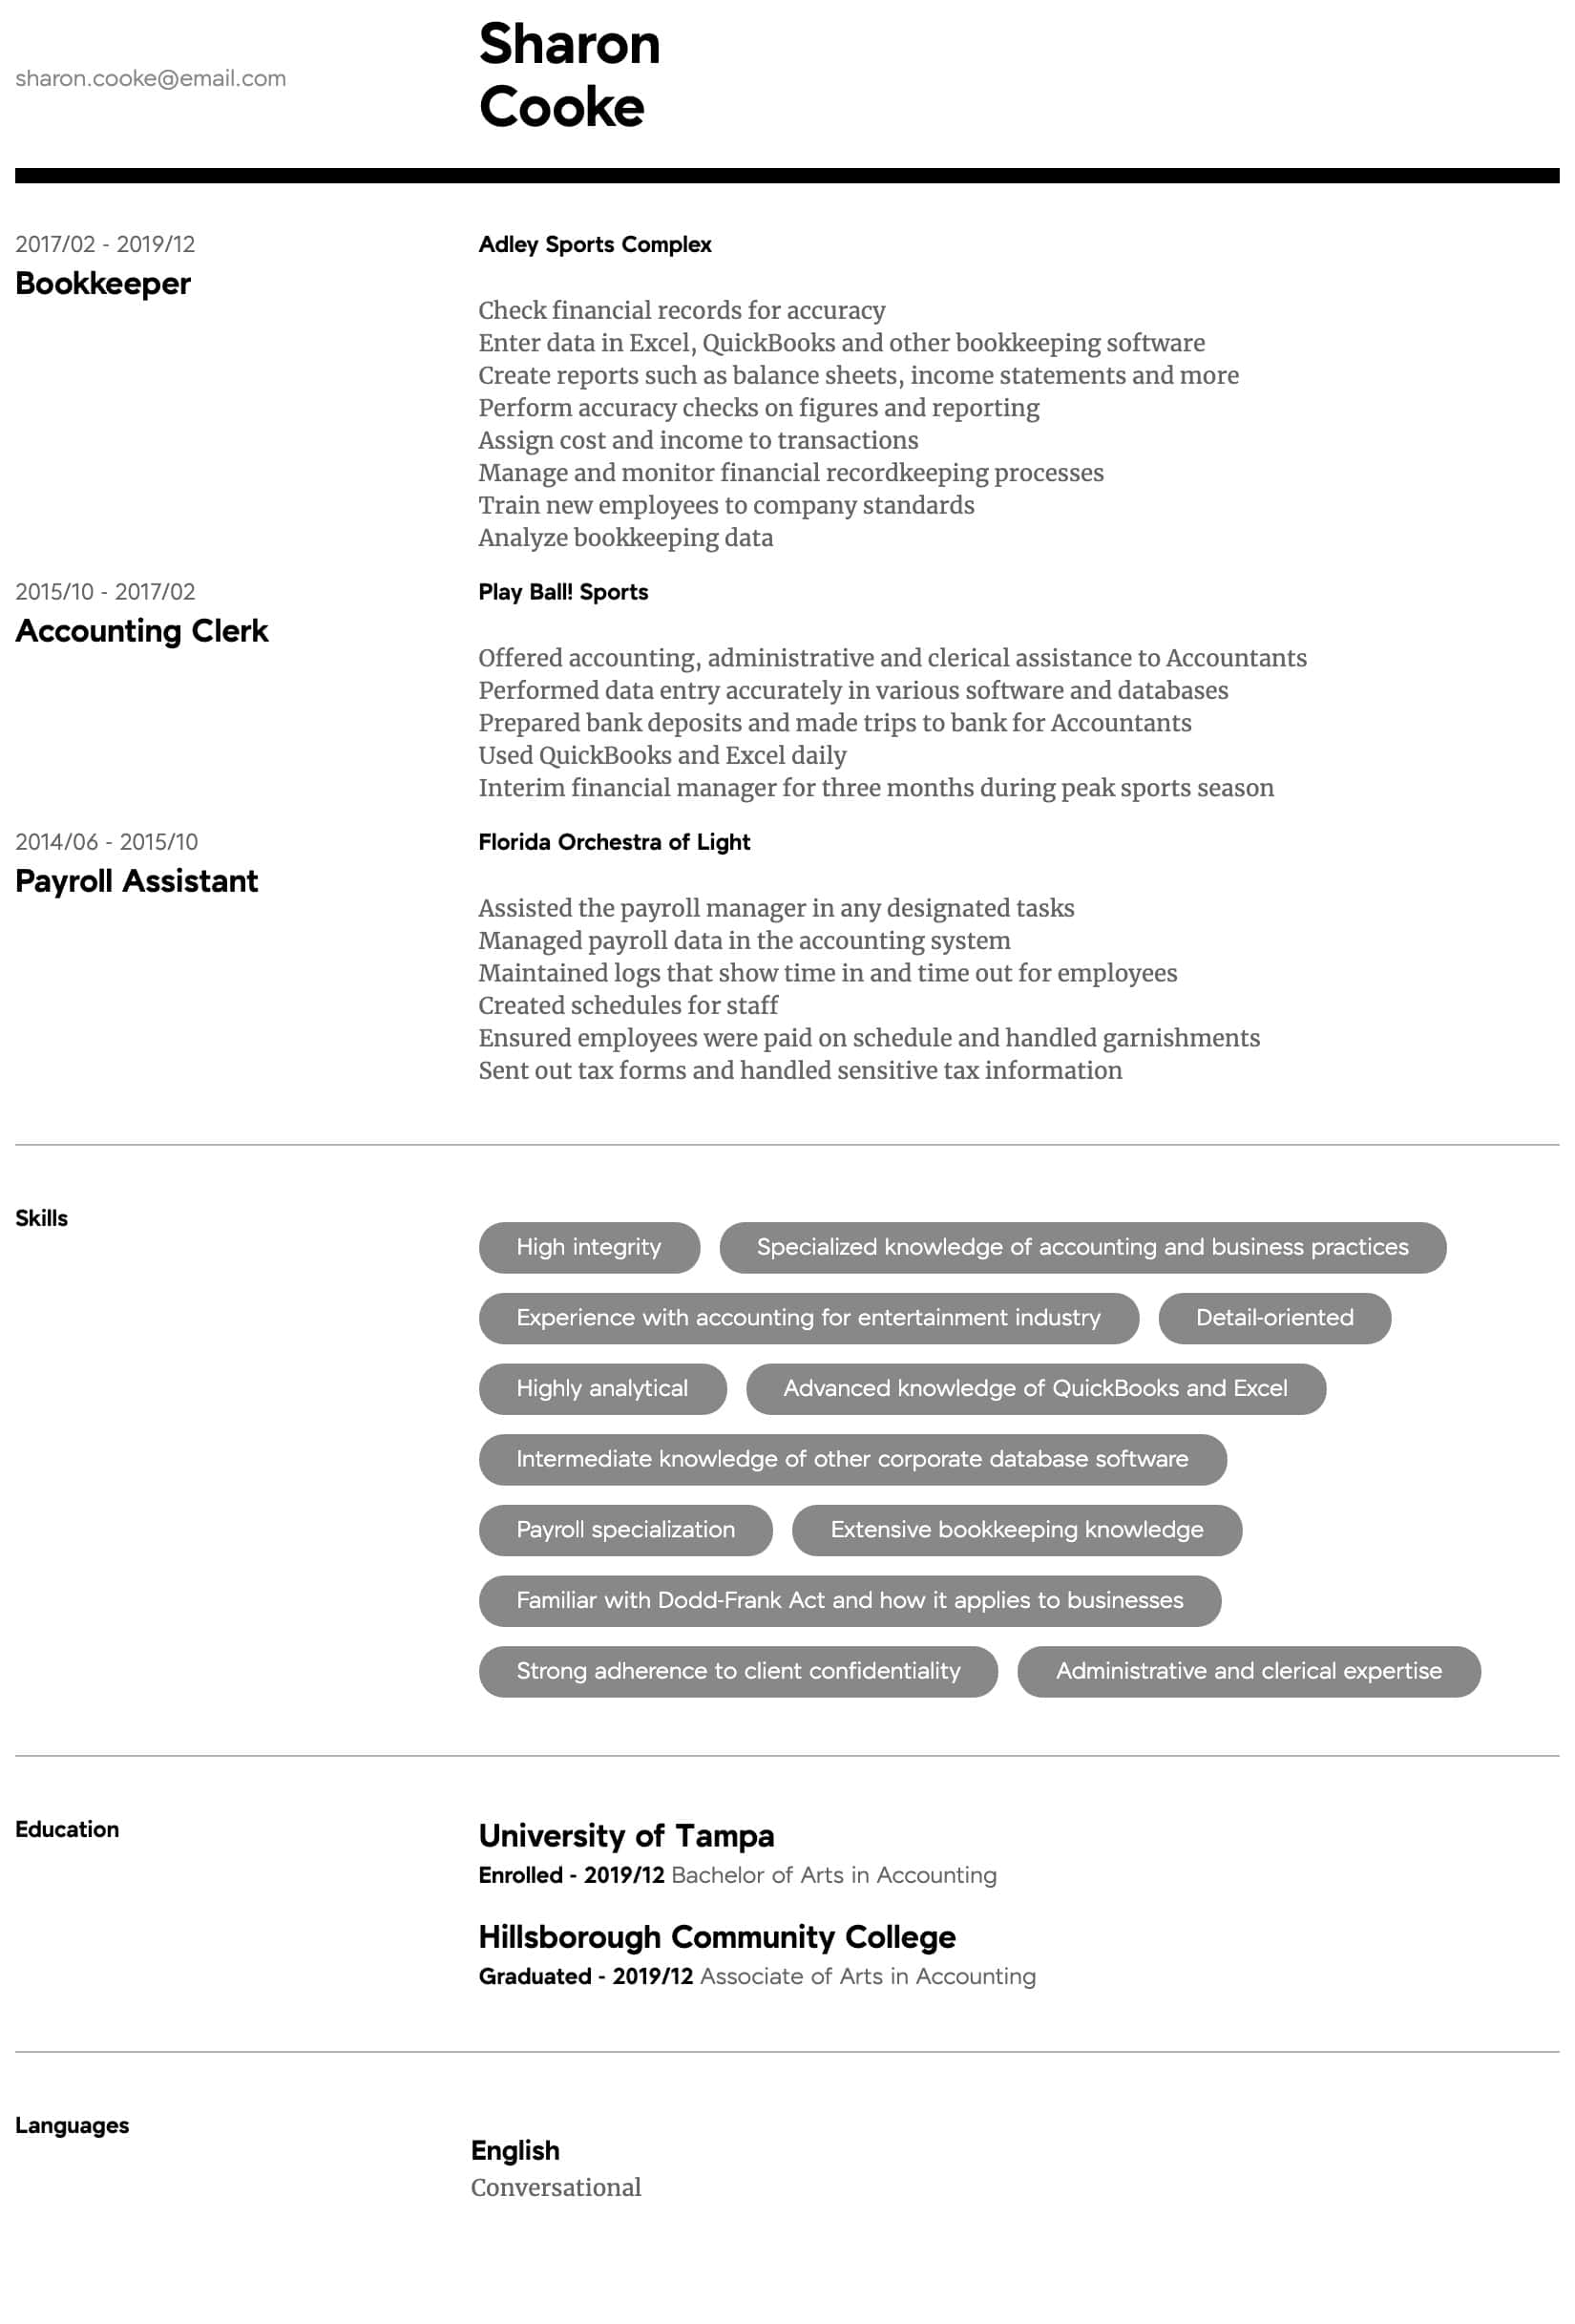 accountant resume samples all experience levels cost summary intermediate free retail Resume Cost Accountant Resume Summary